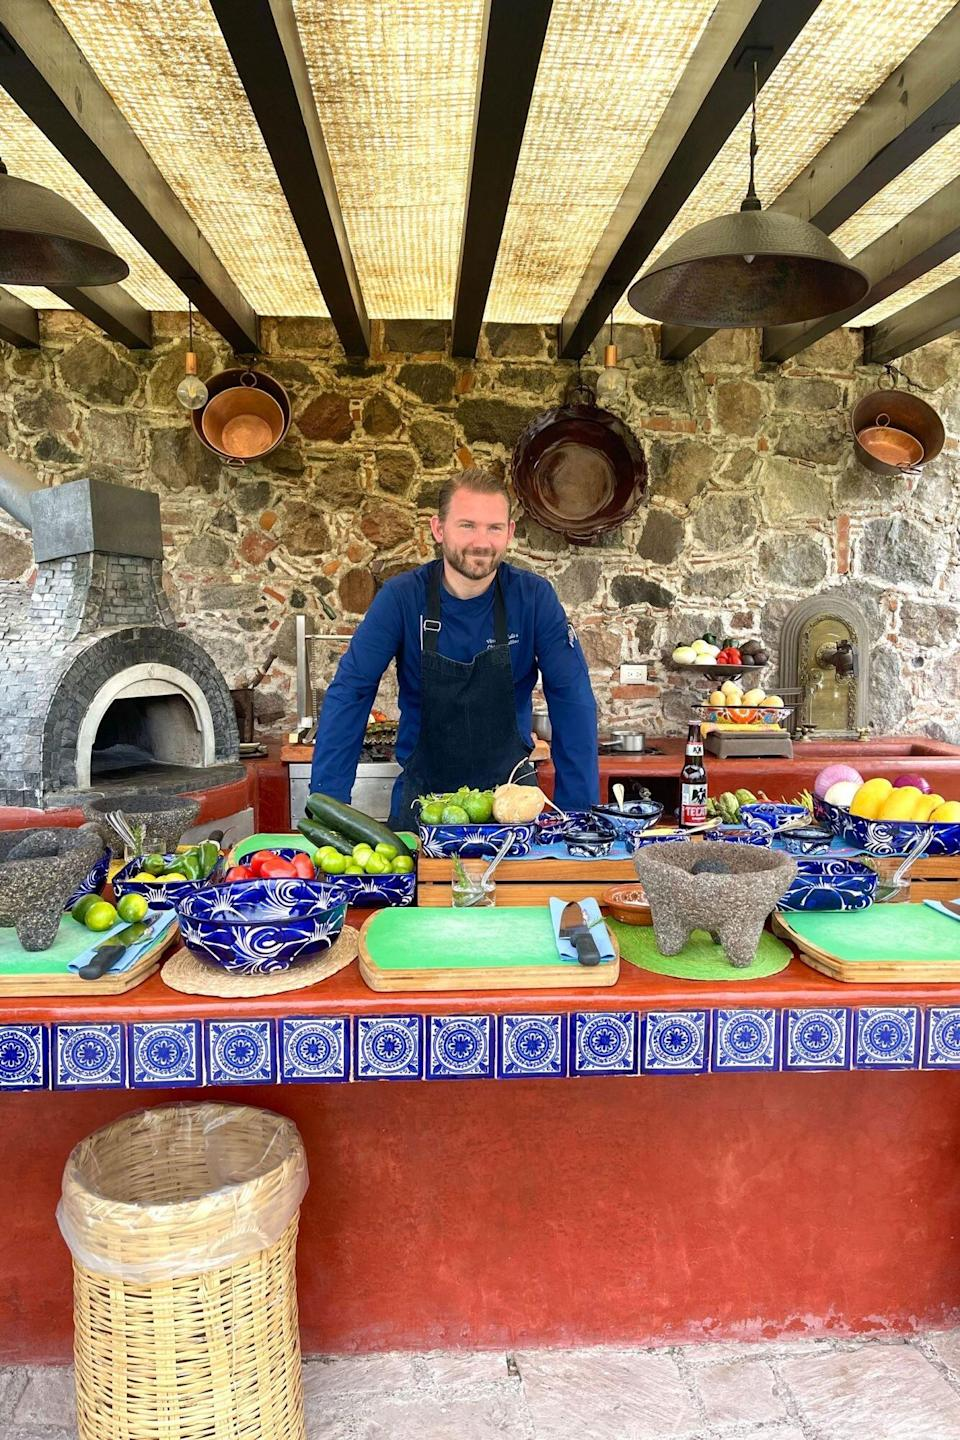 Chef at Rosewood San Miguel de Allende teaching cooking class